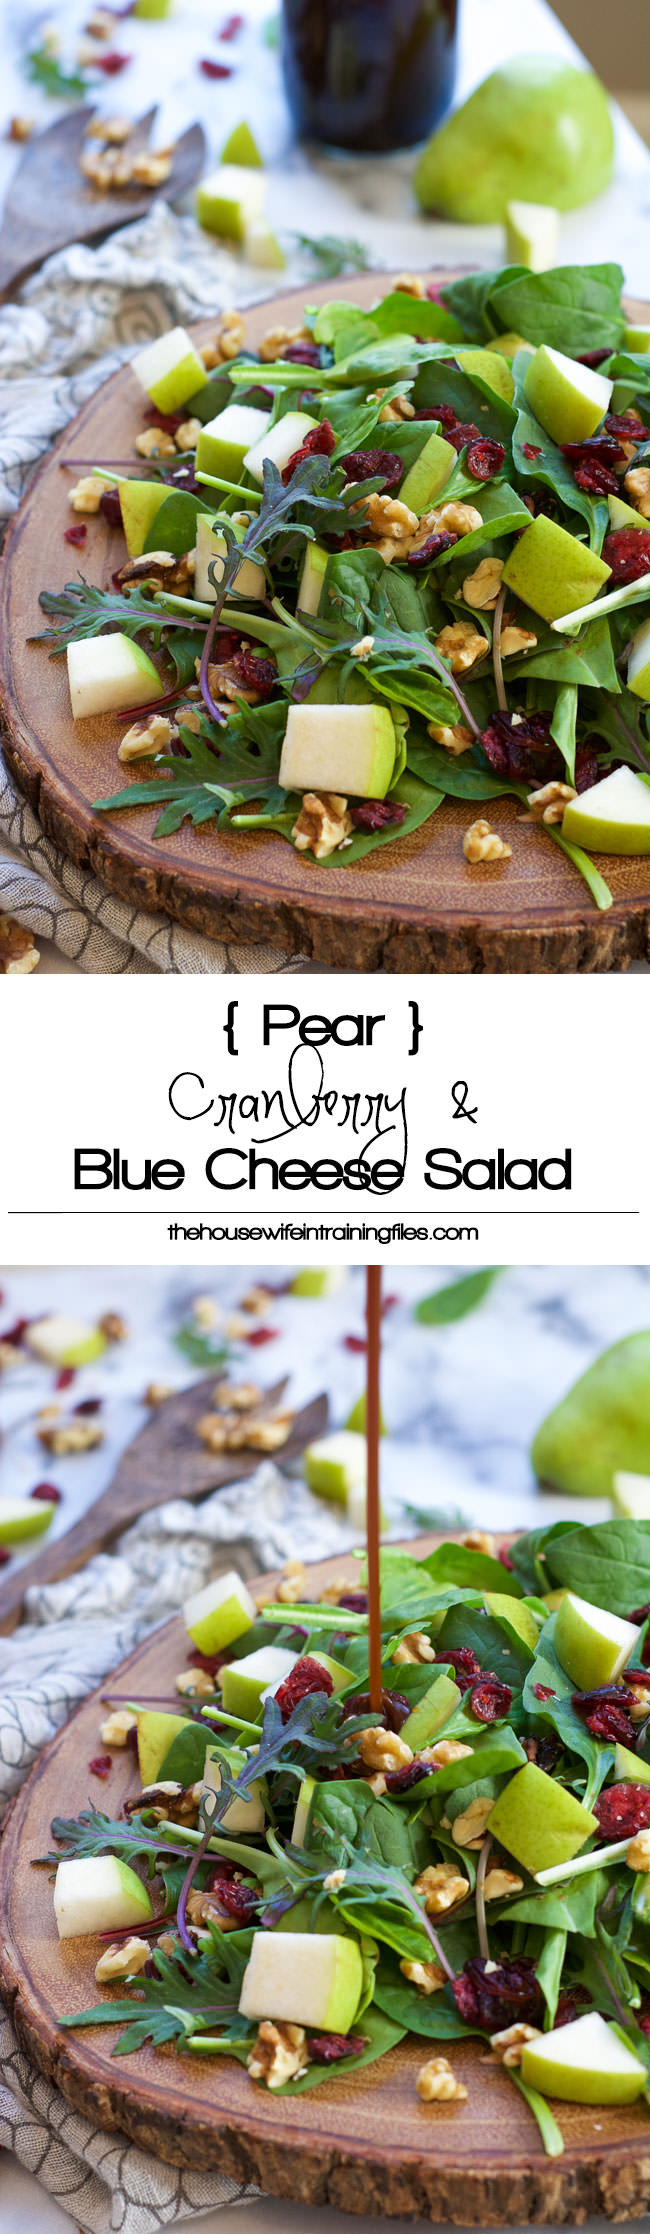 This Cranberry Spinach Salad is filled with slightly sweet pears, tart dried cranberries, creamy blue cheese and honey pecans! A sweet and savory salad that is on your table in 5 minutes! #glutenfree #salad #cranberries #healthy